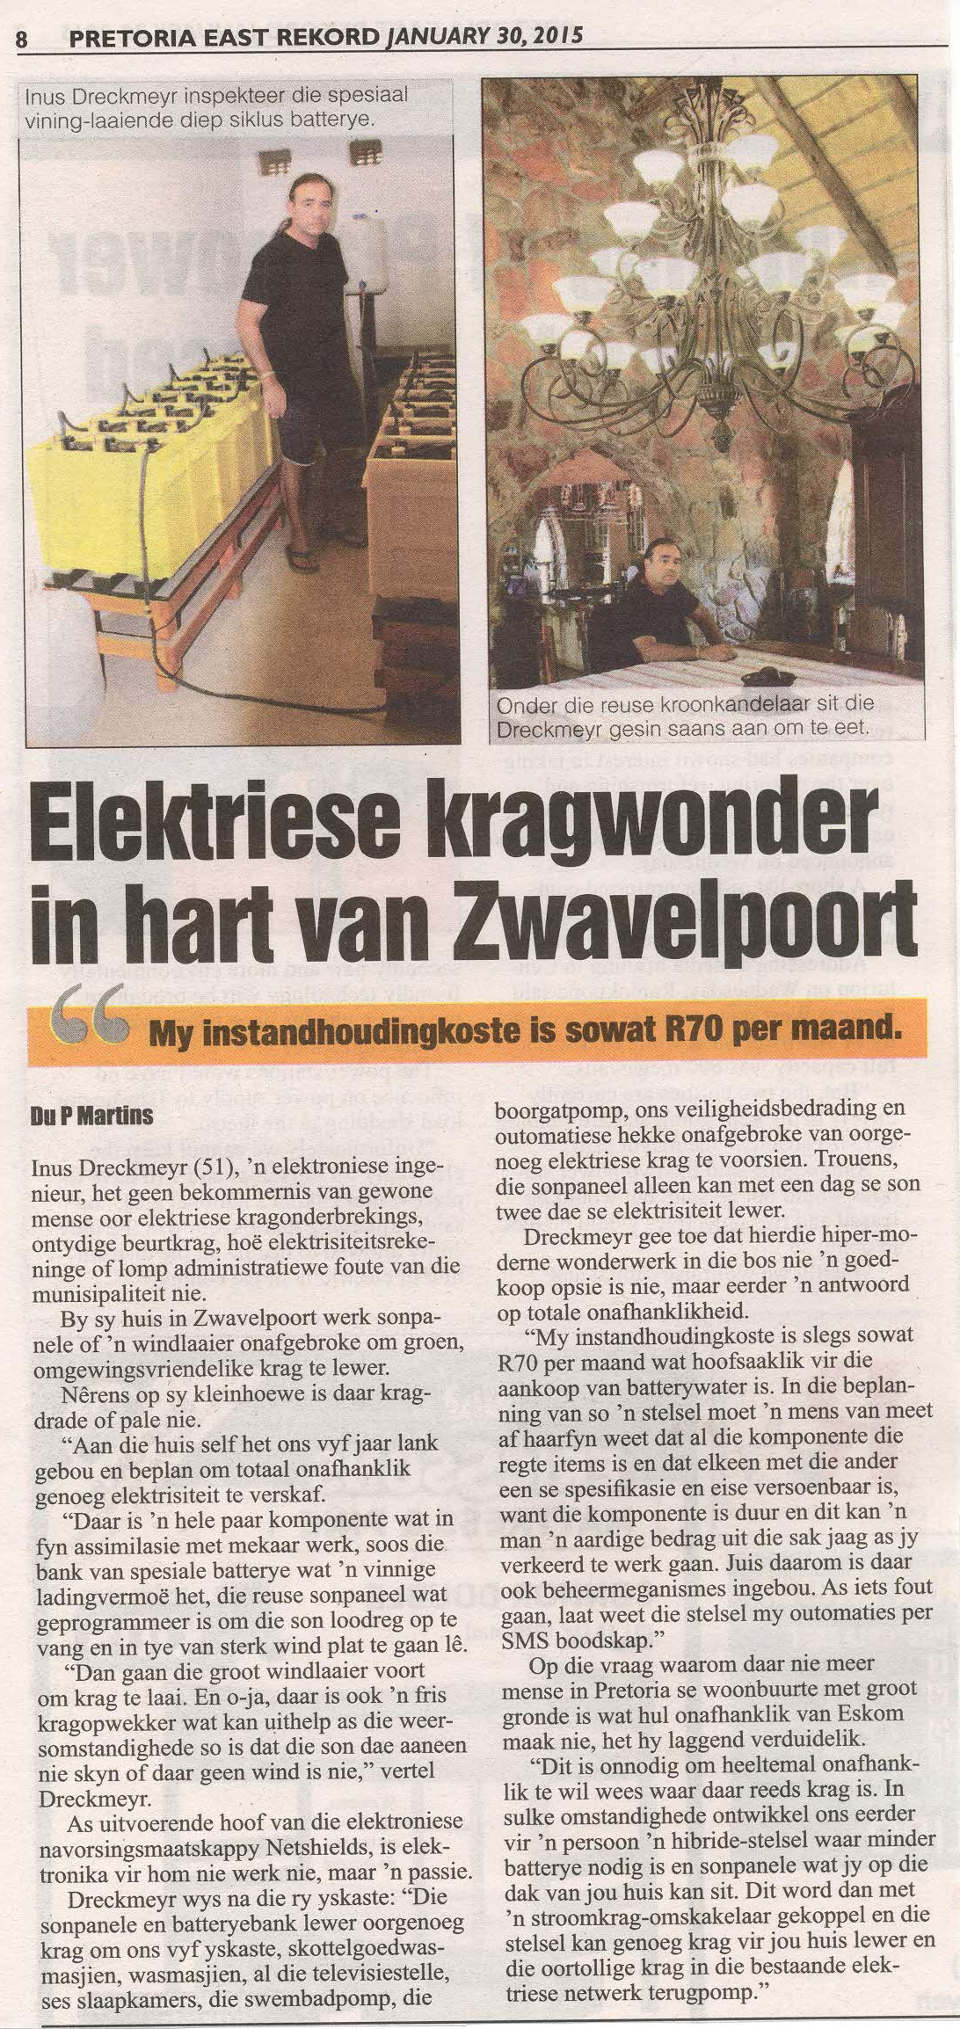 Rekord Article_page1_image1